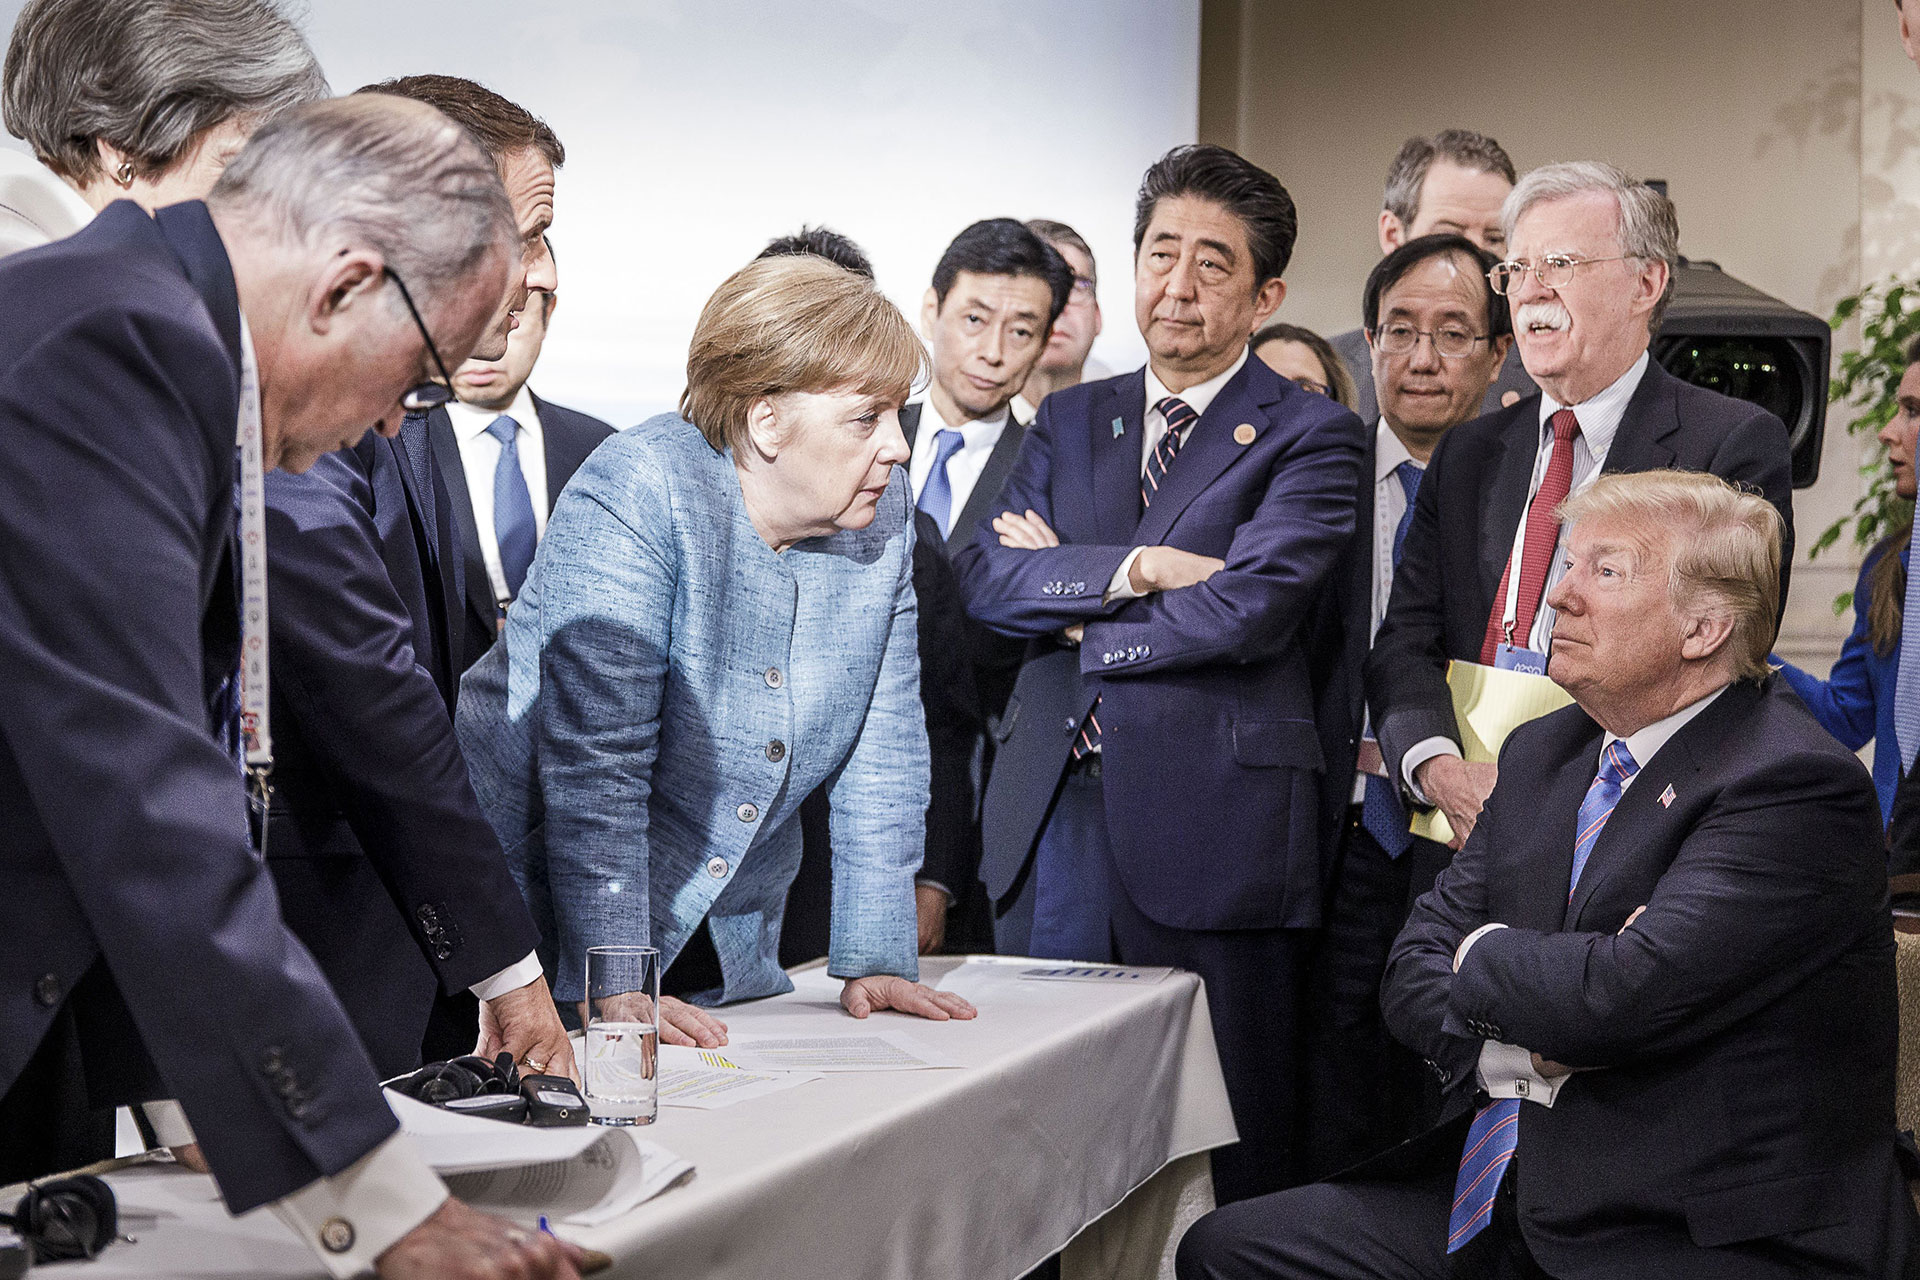 German Chancellor Angela Merkel with President Donald Trump during the G-7 summit